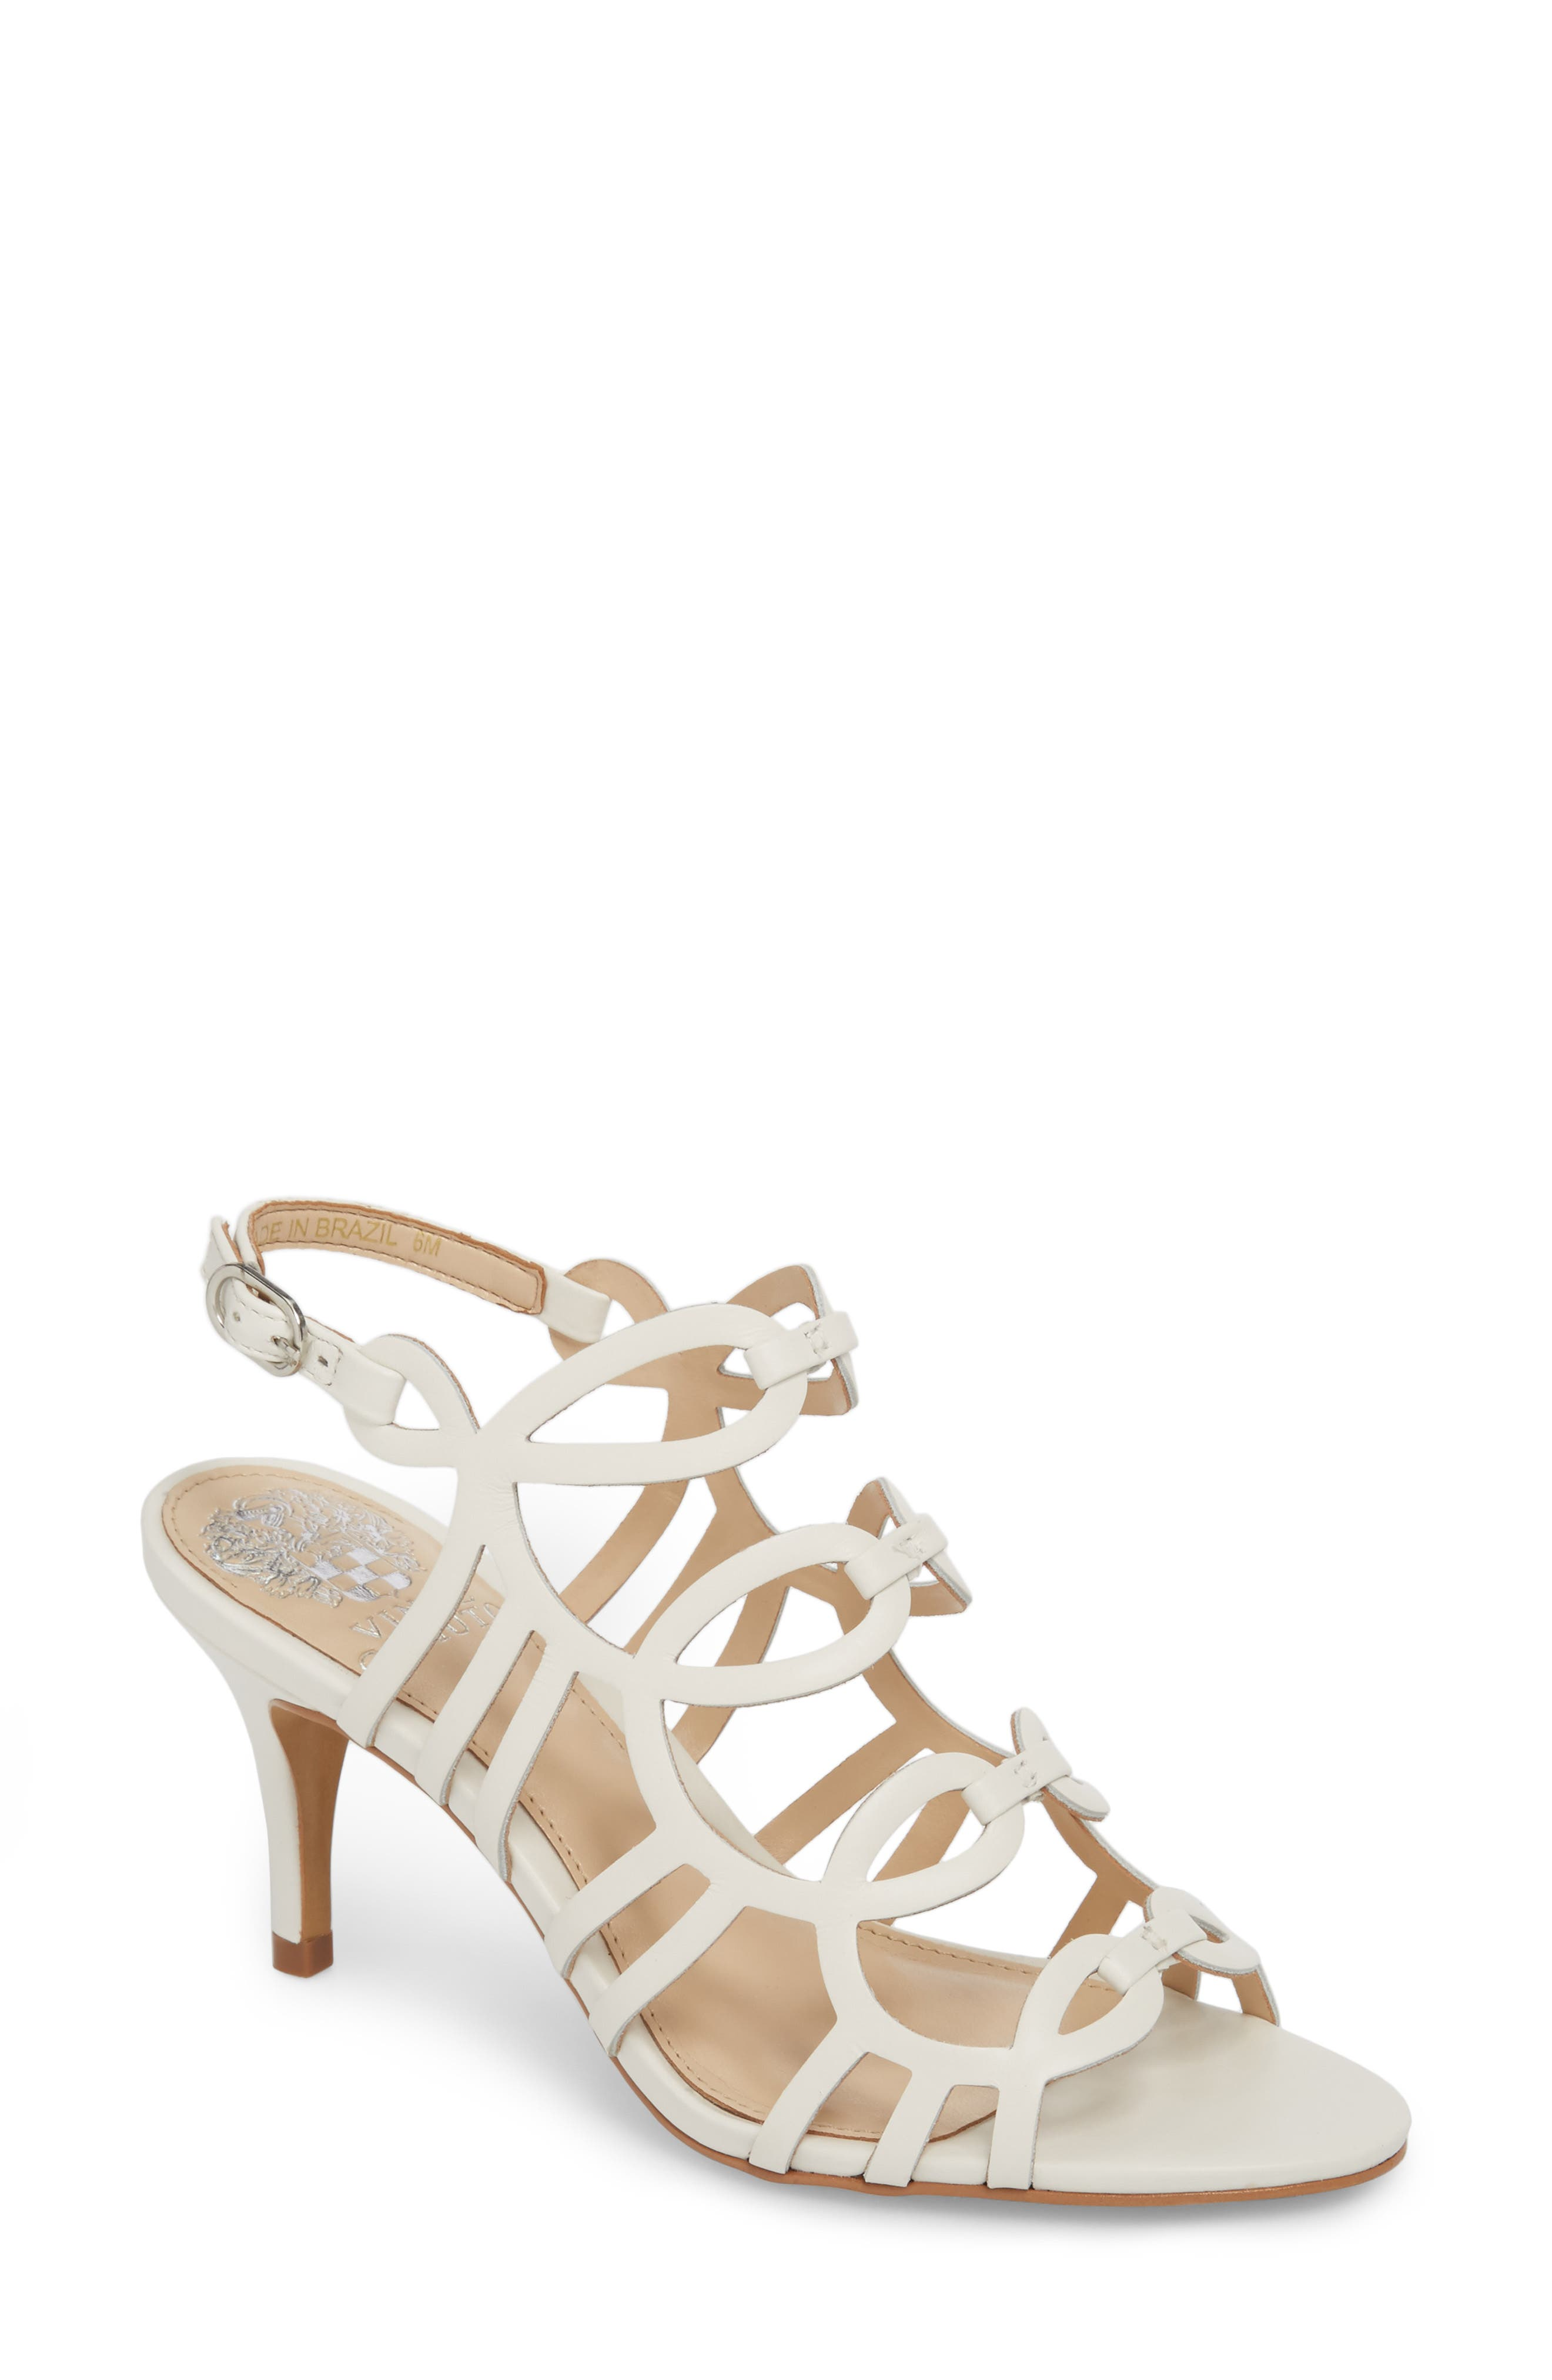 Petina Sandal,                             Main thumbnail 1, color,                             WHITE LEATHER